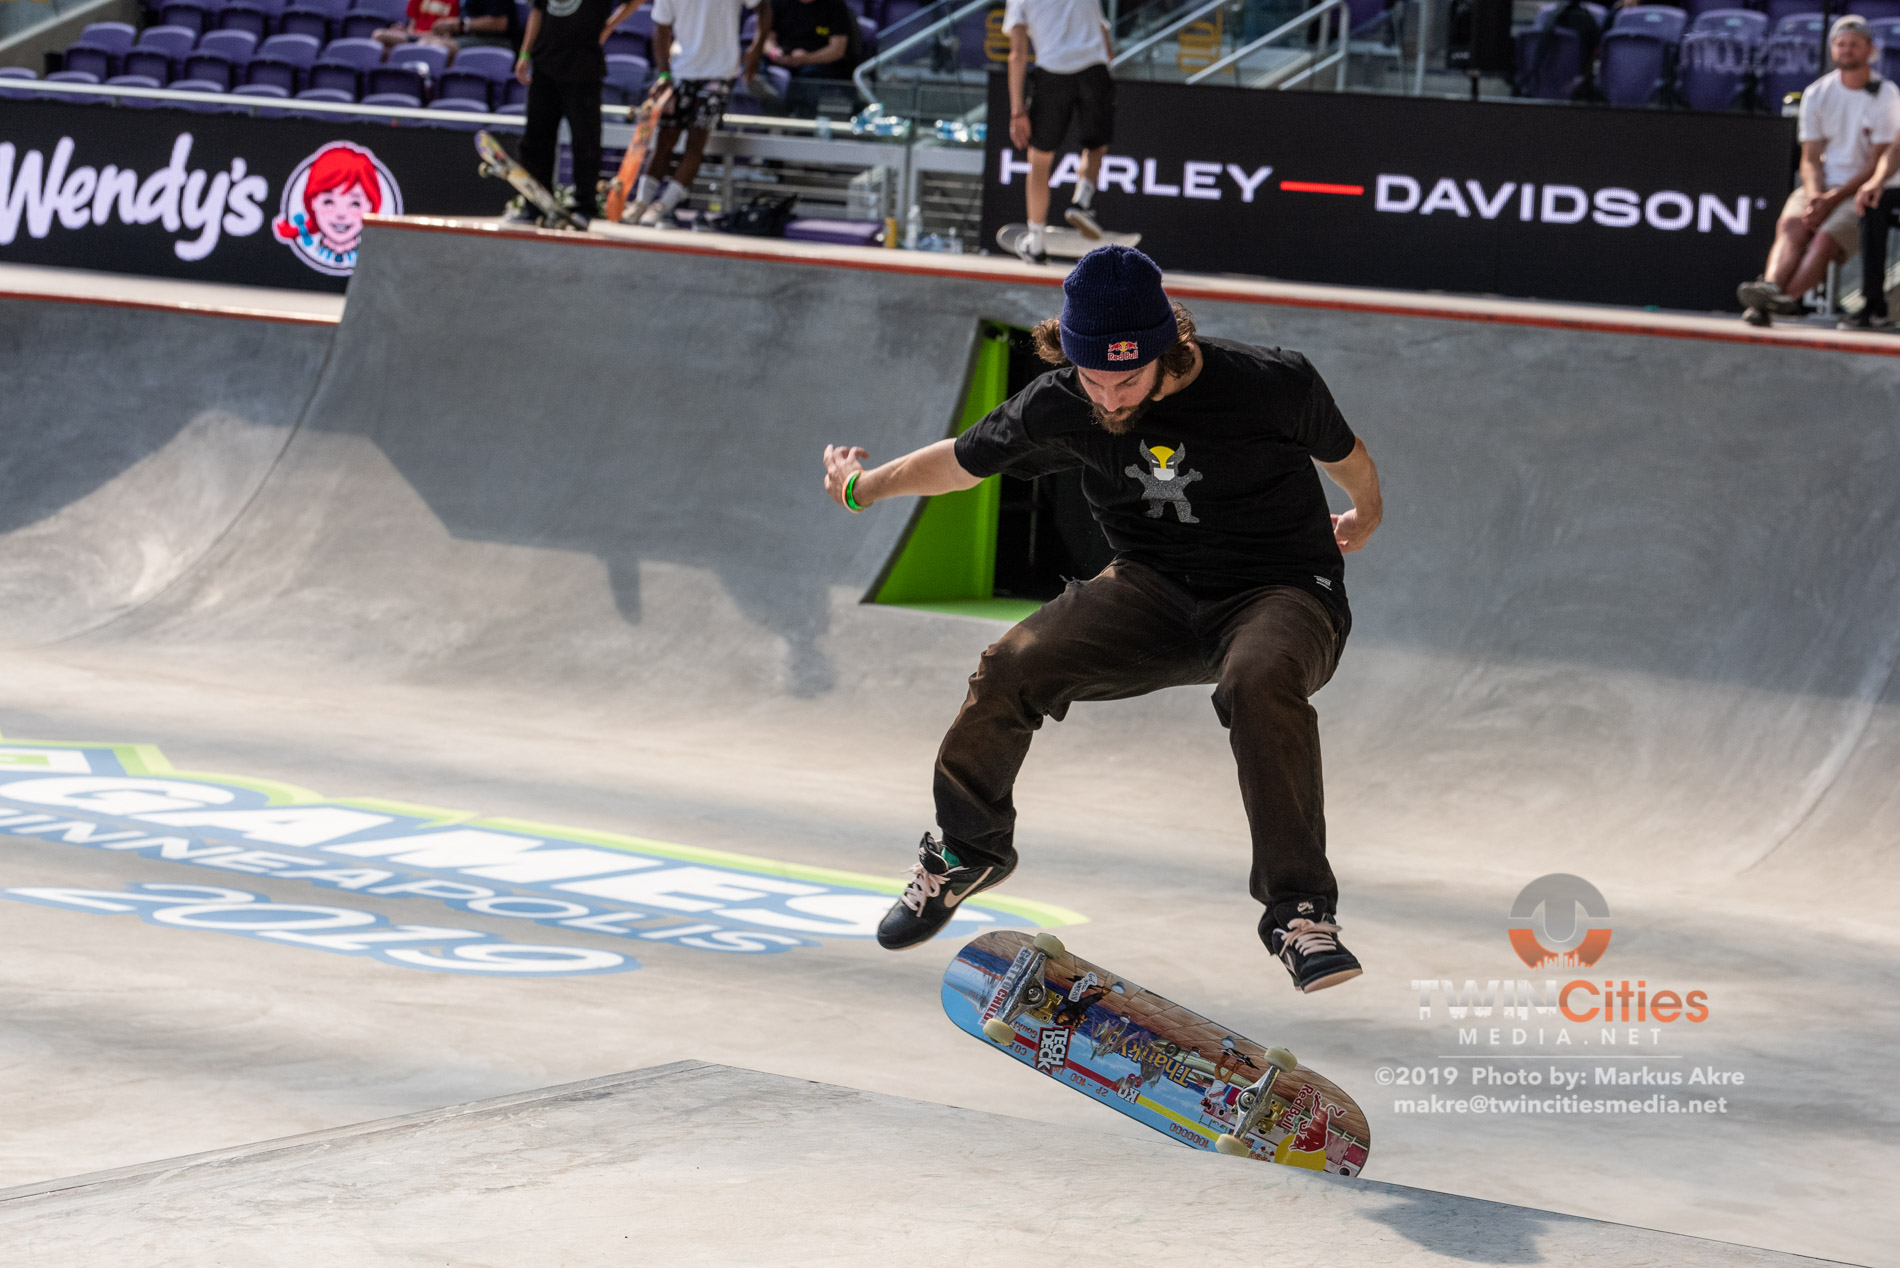 2019-X-Games-Day-1-Skate-Elims-8